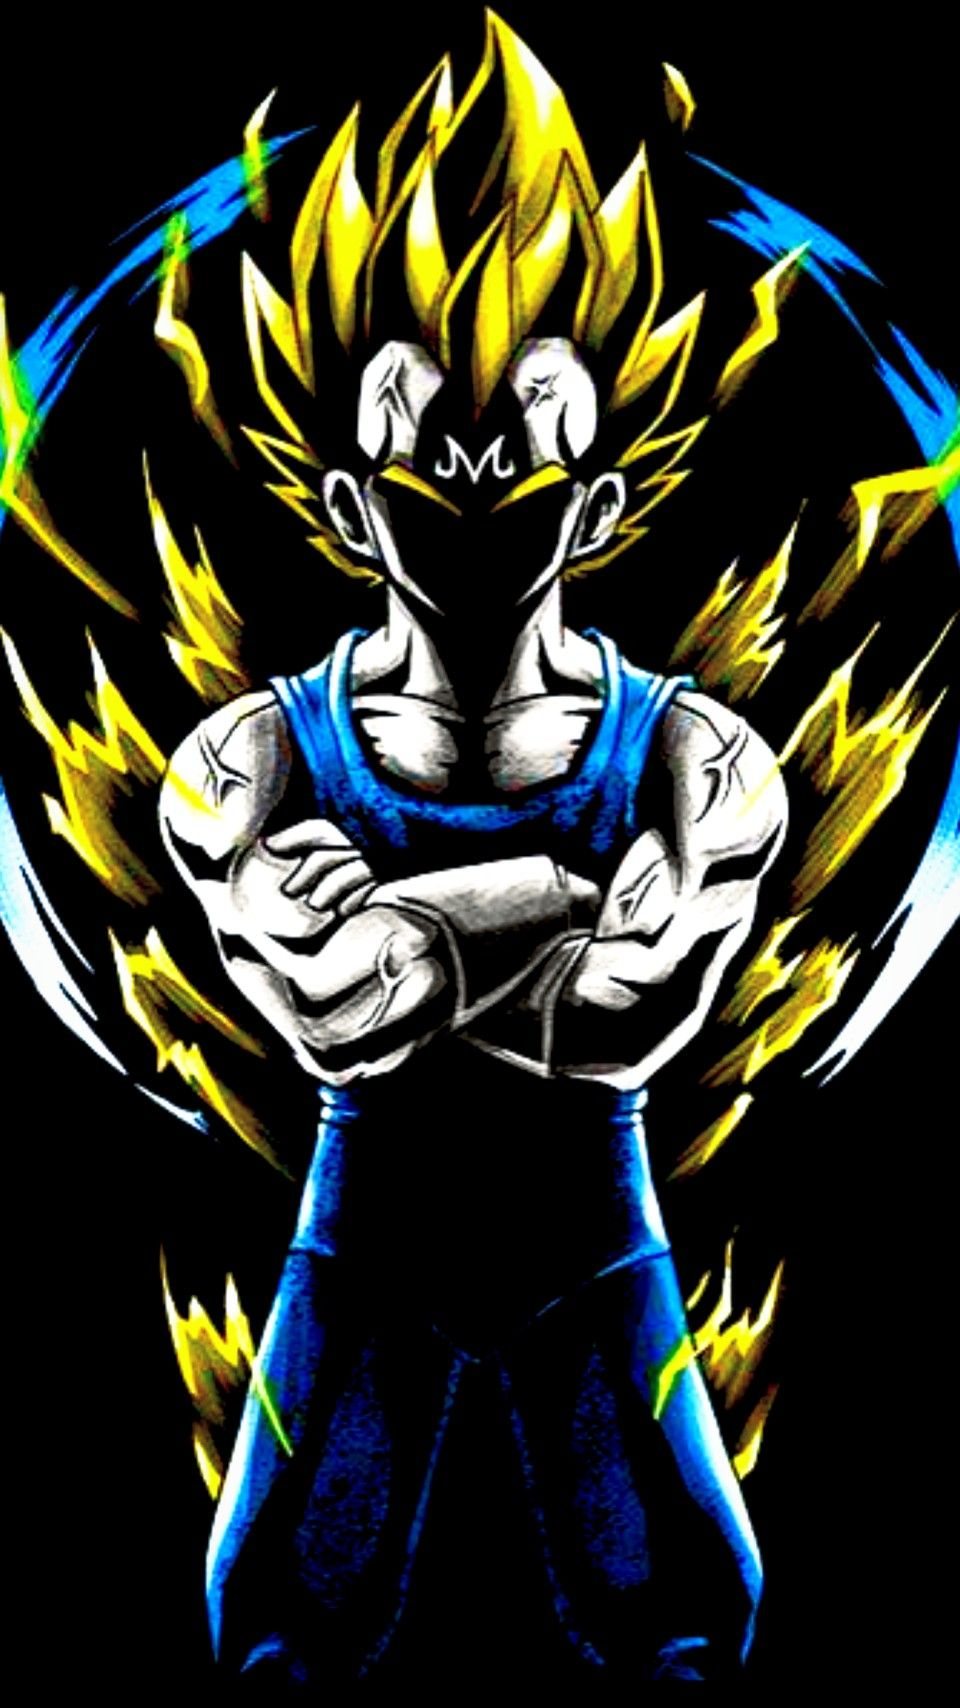 Majin Vegeta Dragon ball z iphone wallpaper, Dragon ball